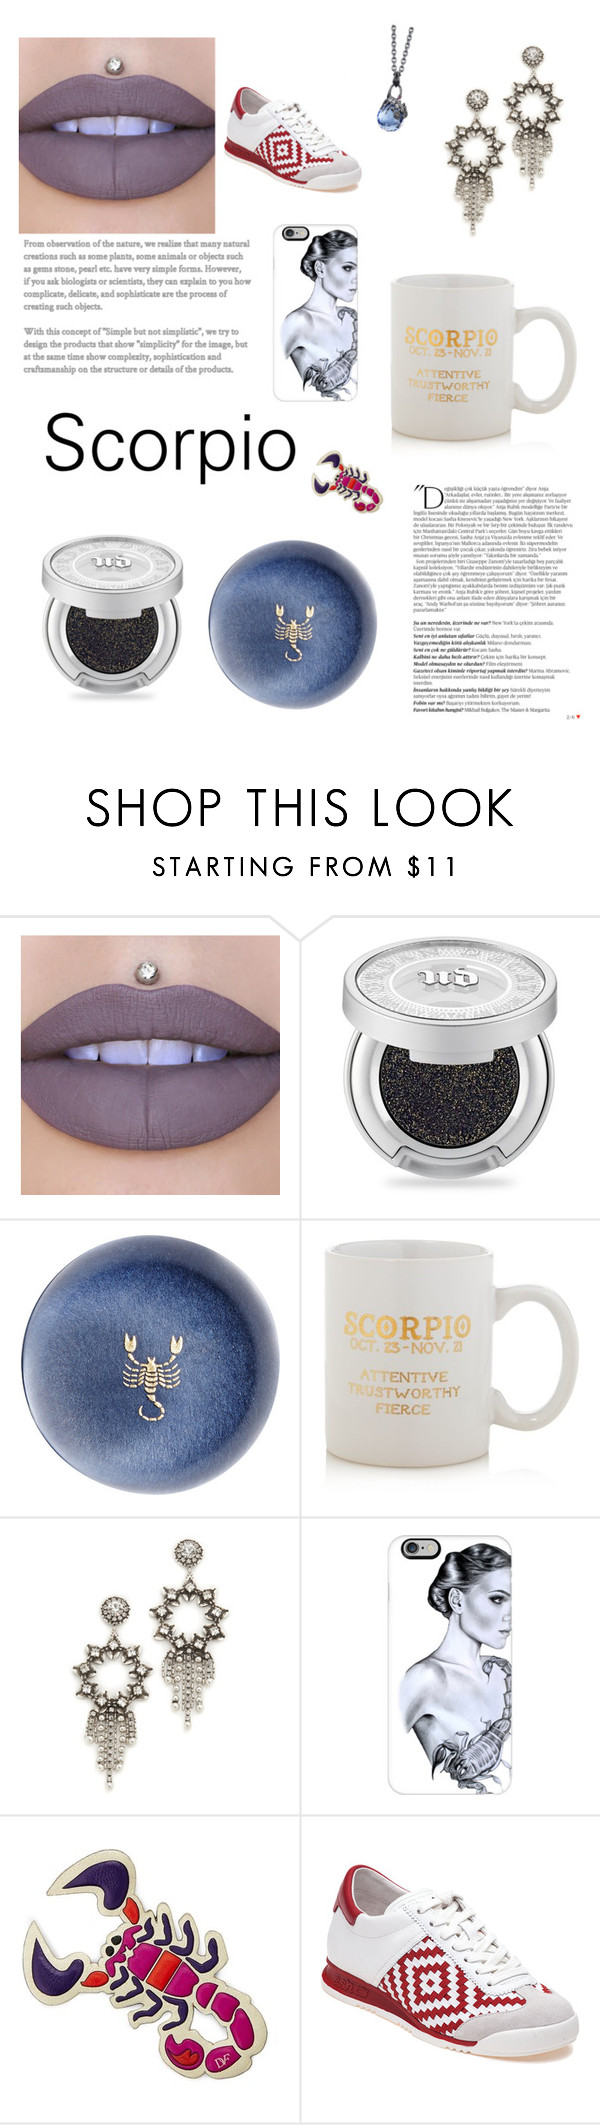 """Cosmic Jewelry: Scorpio"" by kpopqueen ❤ liked on Polyvore featuring Balmain, Urban Decay, Connor, Sparrow & Wren, DANNIJO, Casetify, Diane Von Furstenberg, Ash and Stephen Webster"